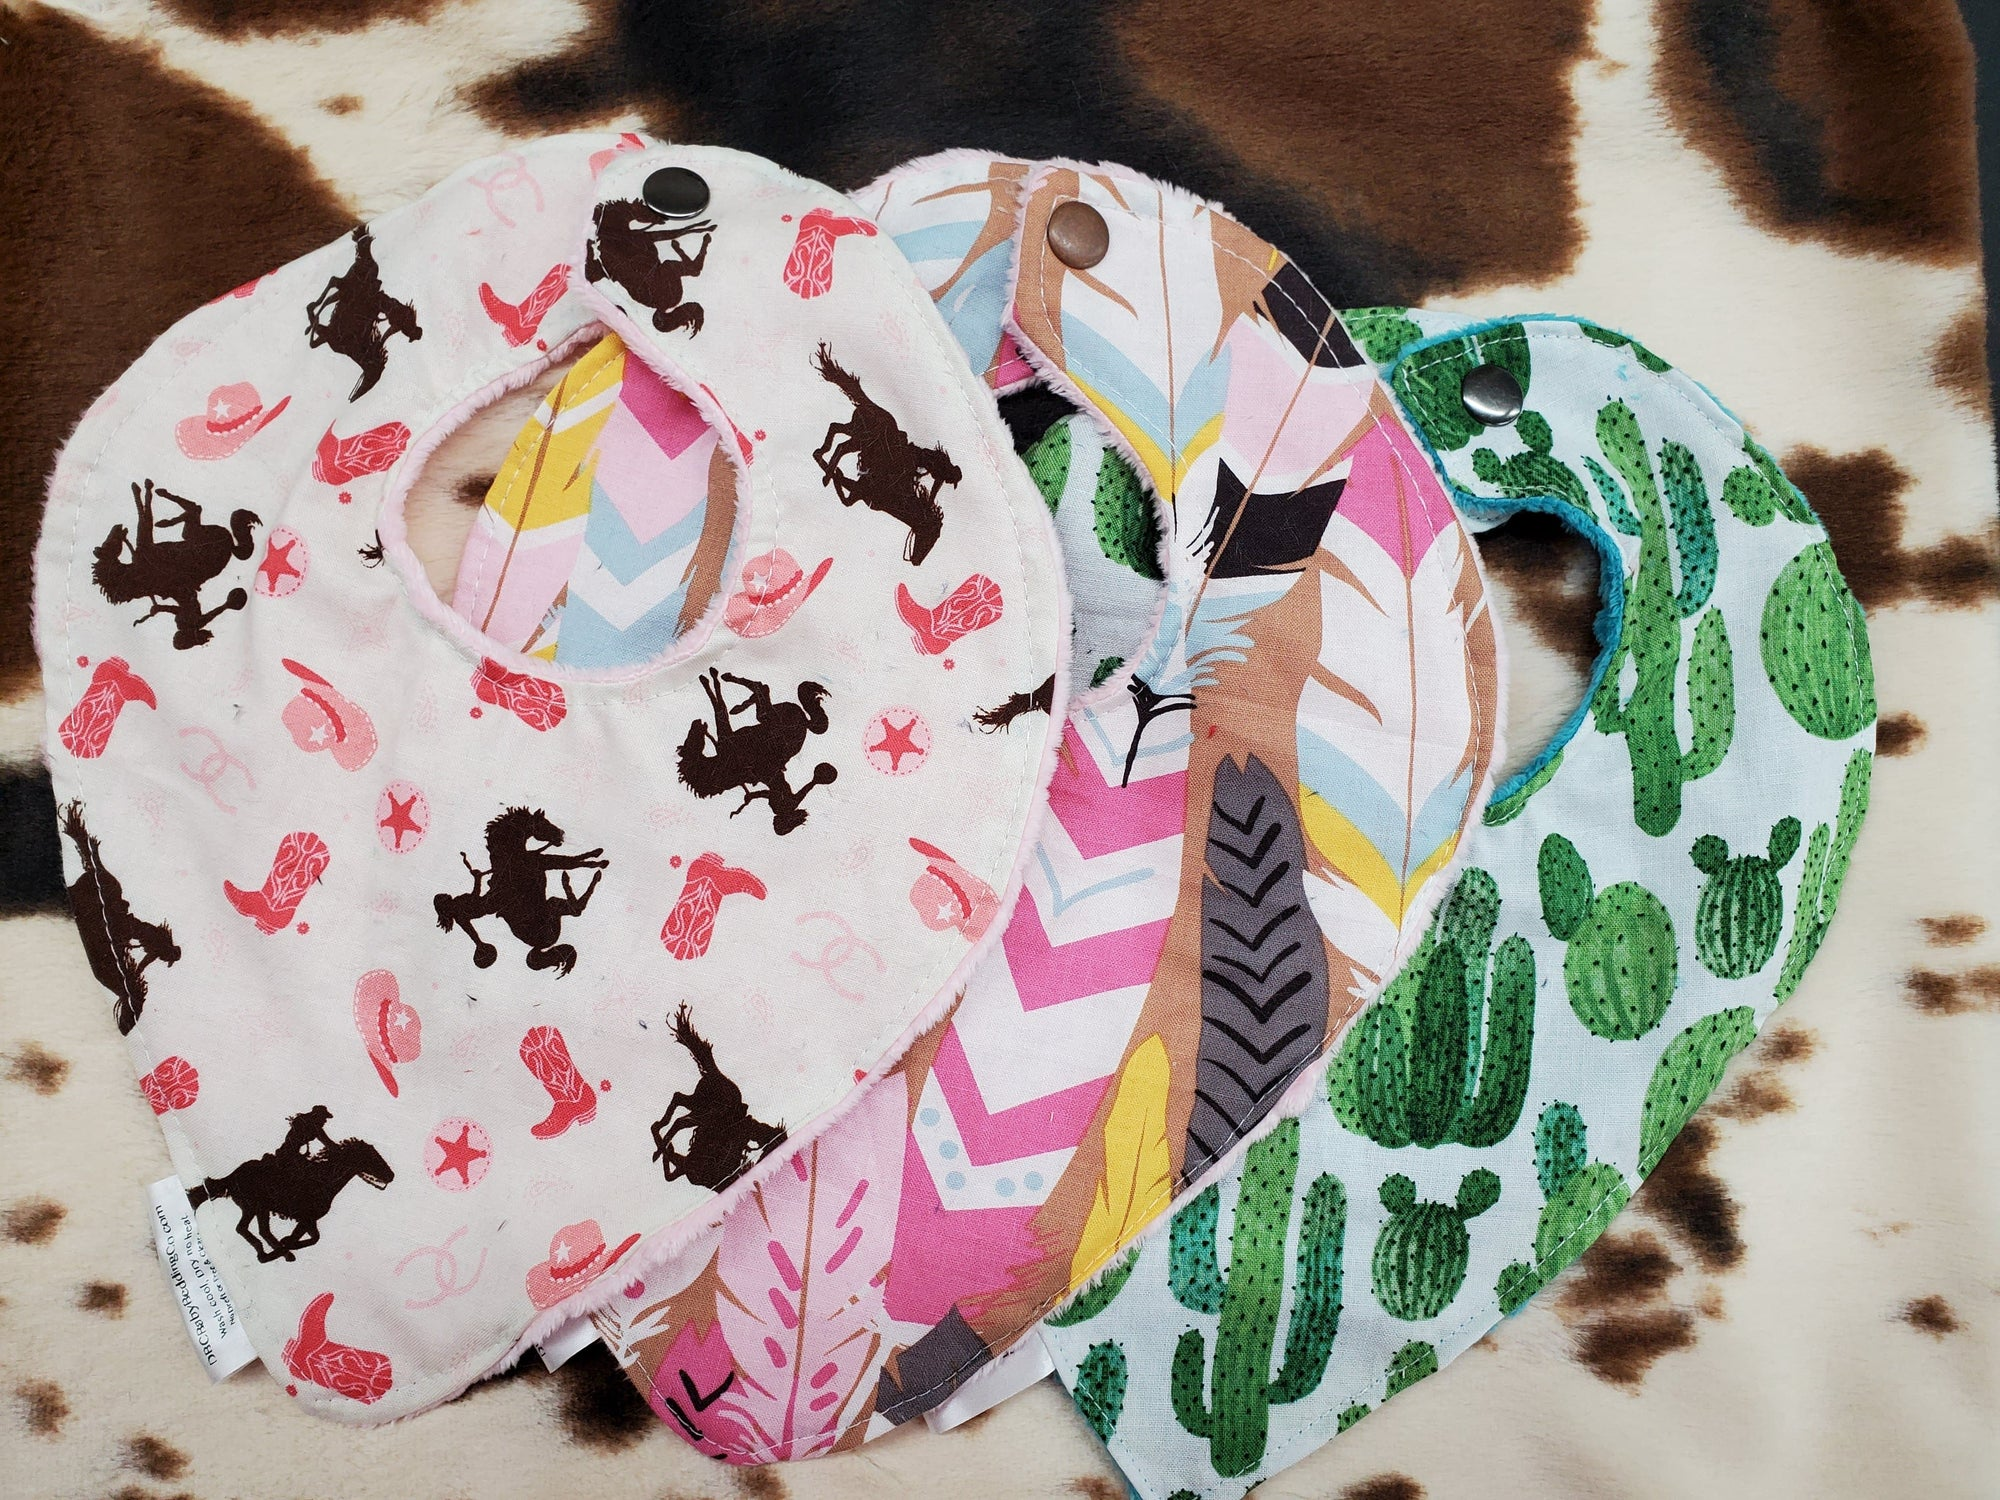 LIVE Specials - Bib- 3 pc set Baby Bibs -Cowgirl, Feathers, and Cactus